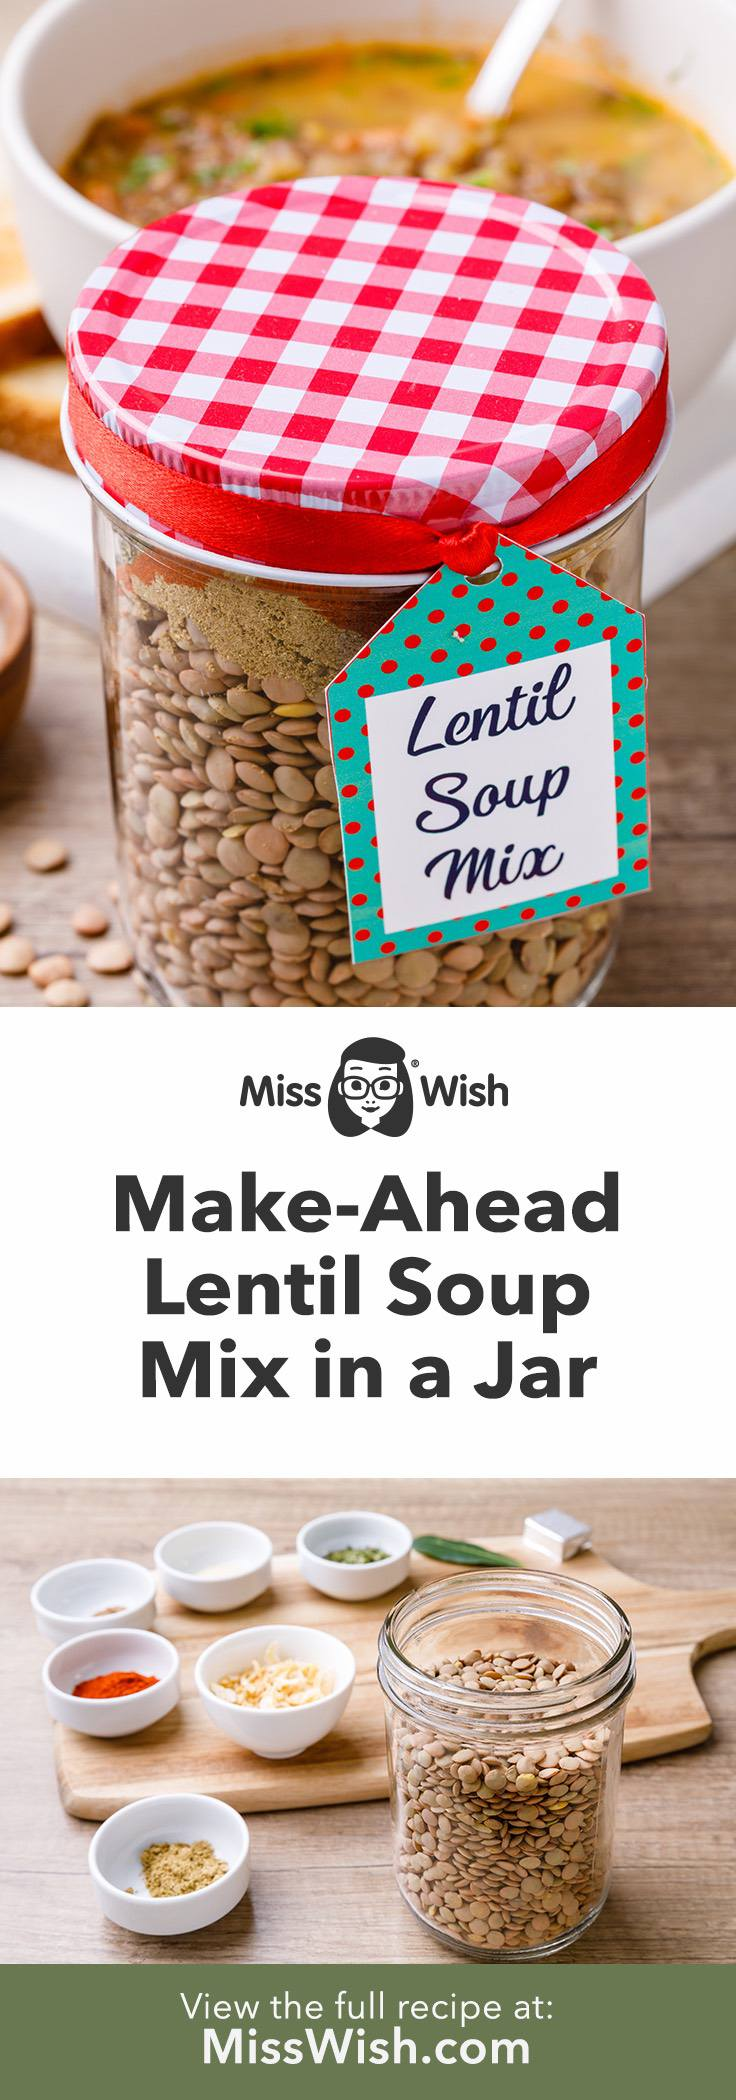 Make-Ahead Lentil Soup Mix Recipe for a Hearty and Healthy Meal